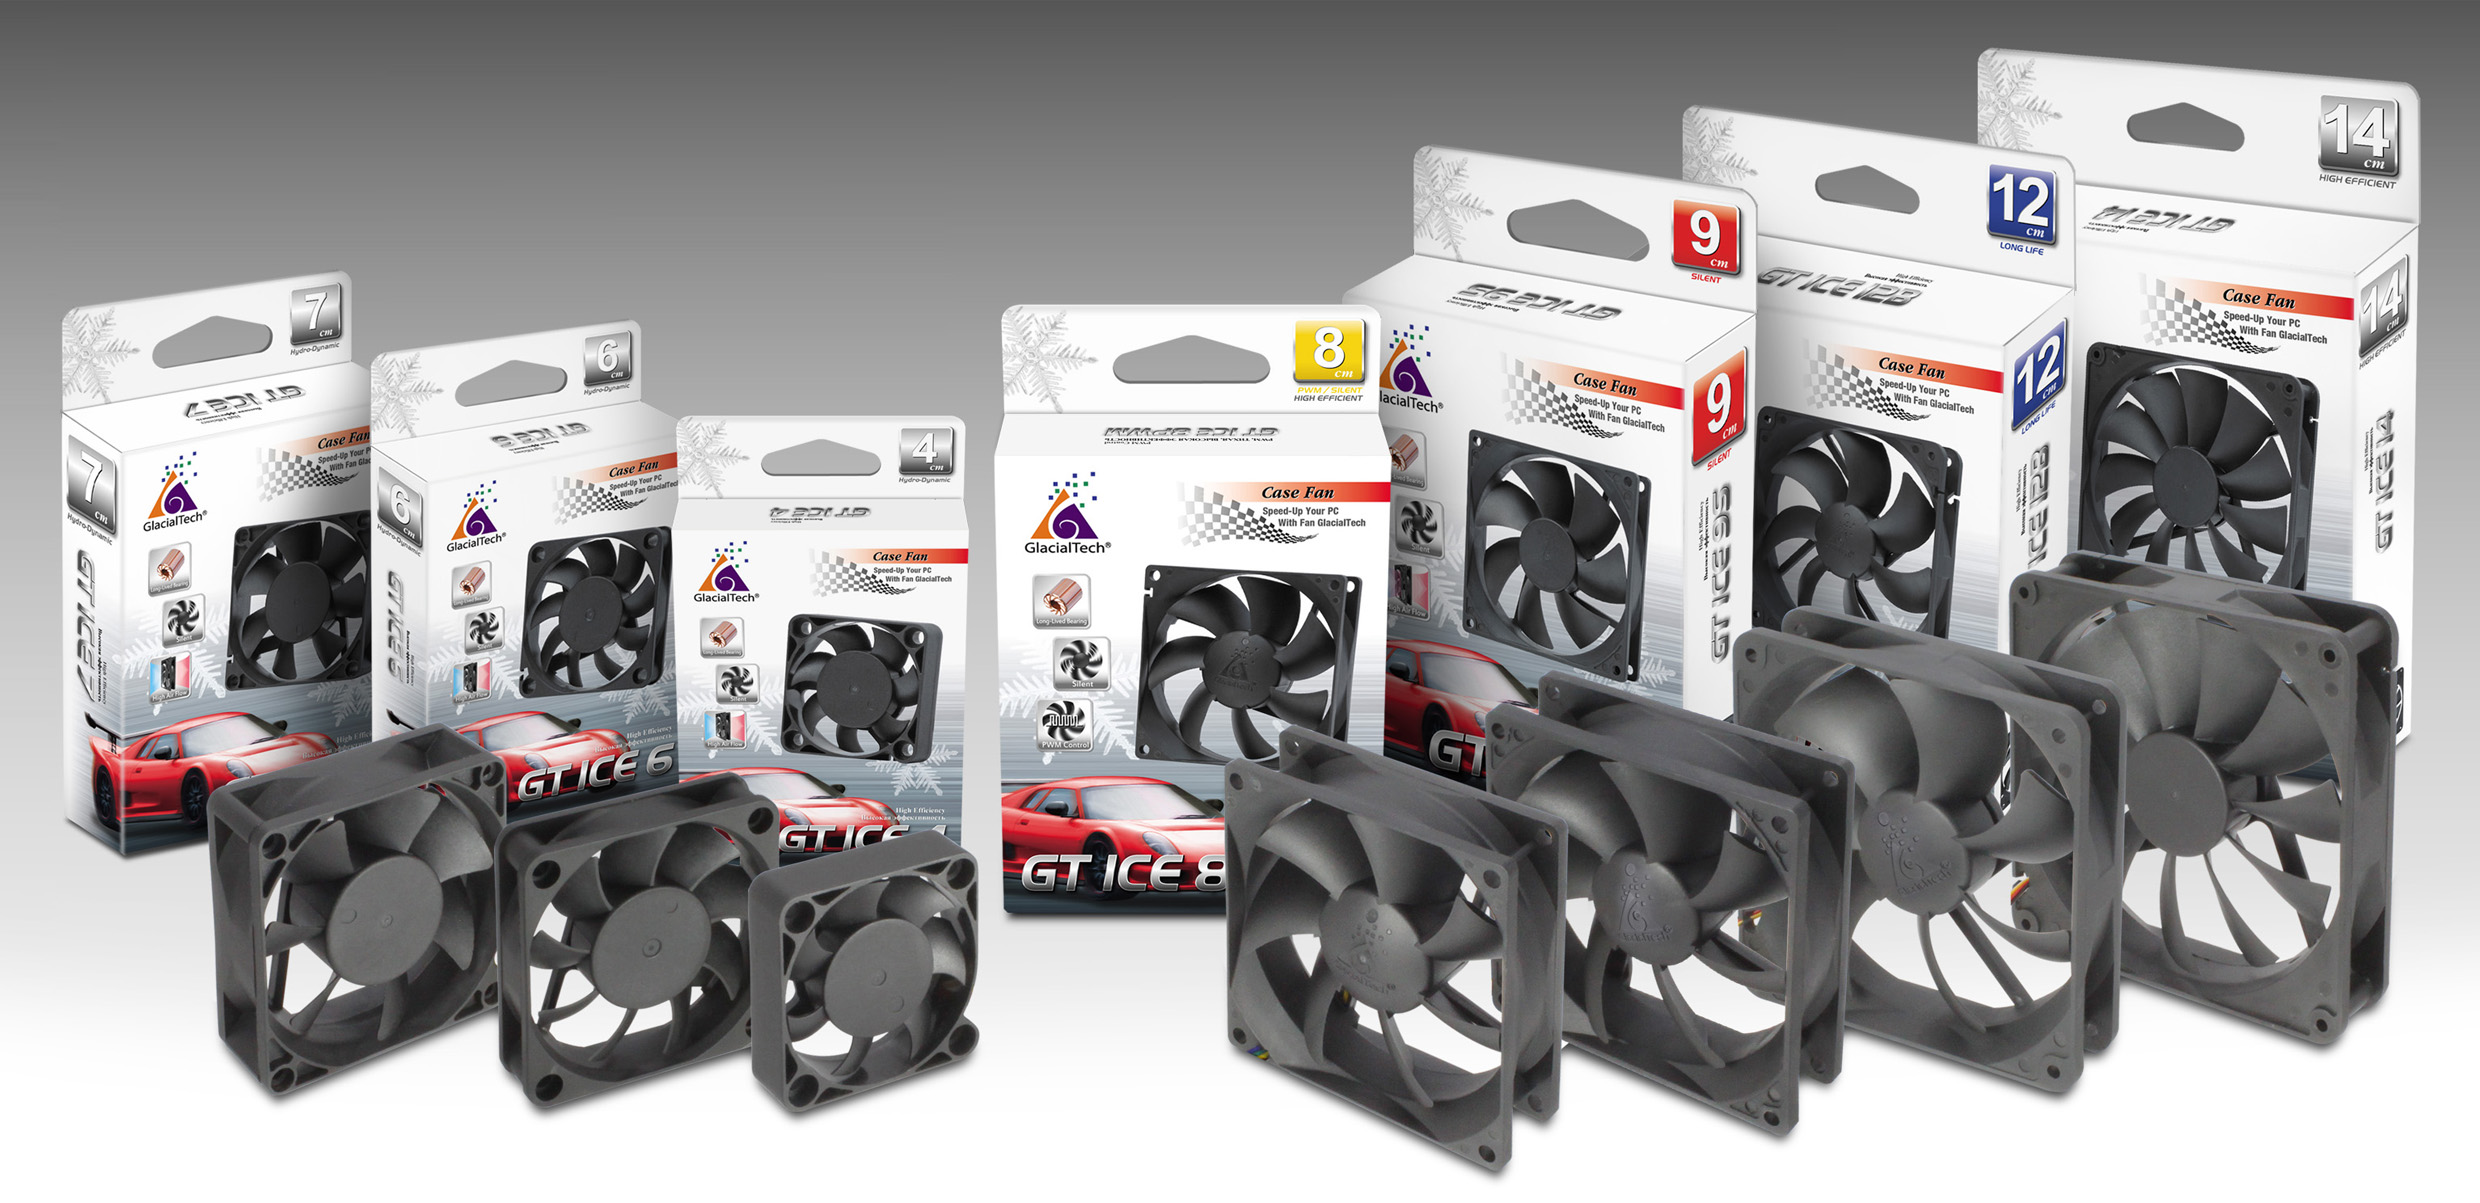 GlacialTech Reorganizes the PC Case Fan Product Line for PC Assemblers and DIY Market